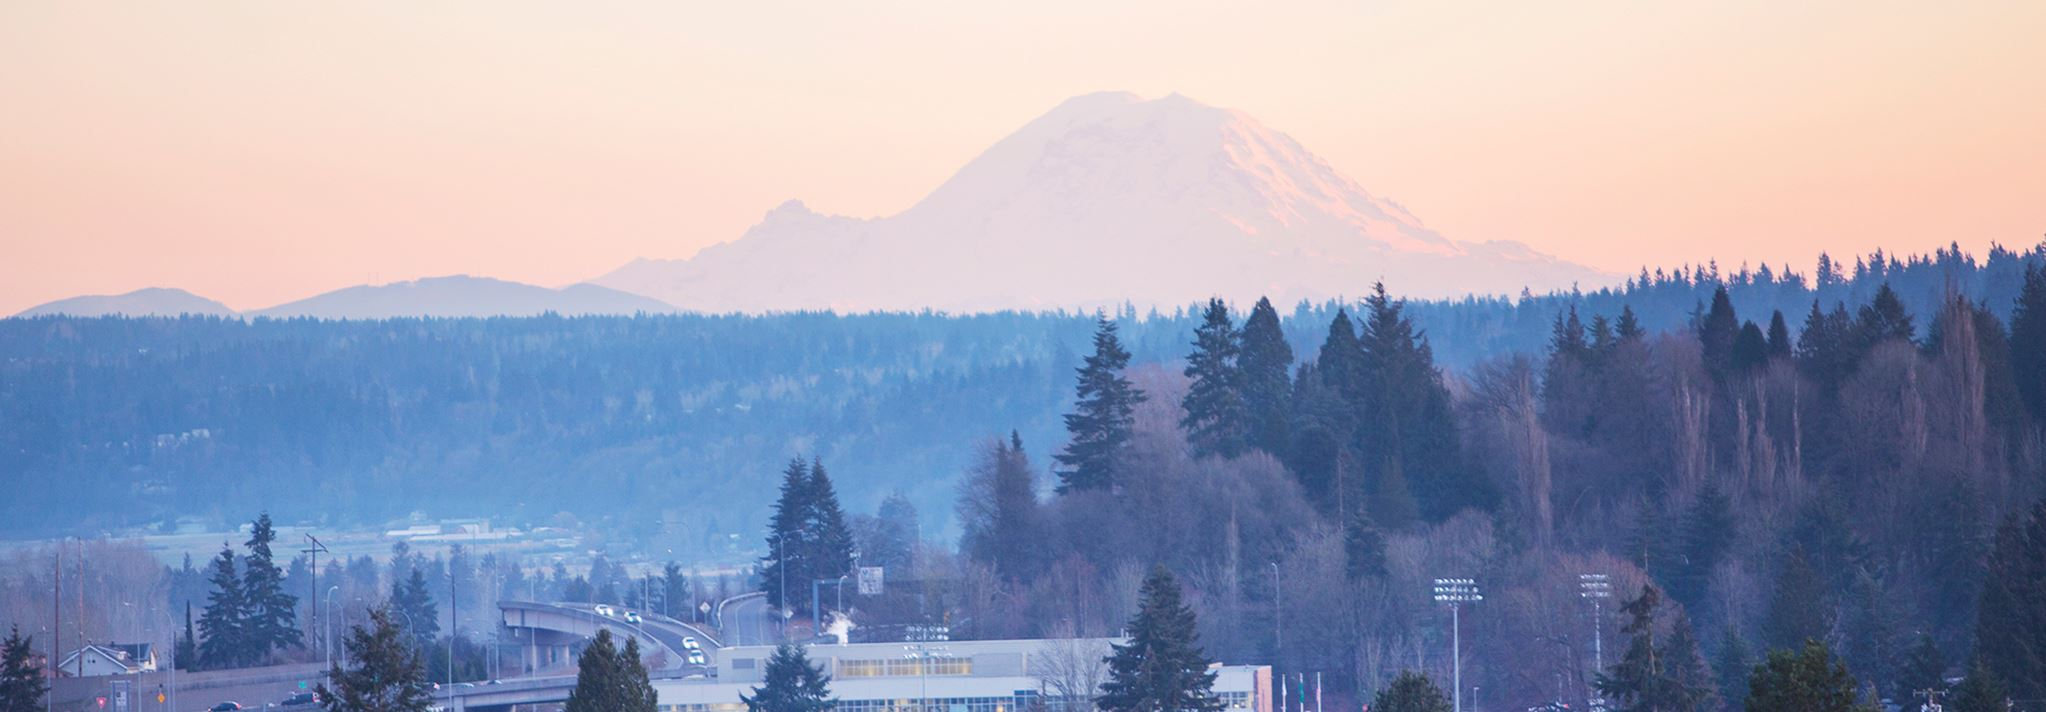 Mount Rainier infront of I-5 and the City of Everett